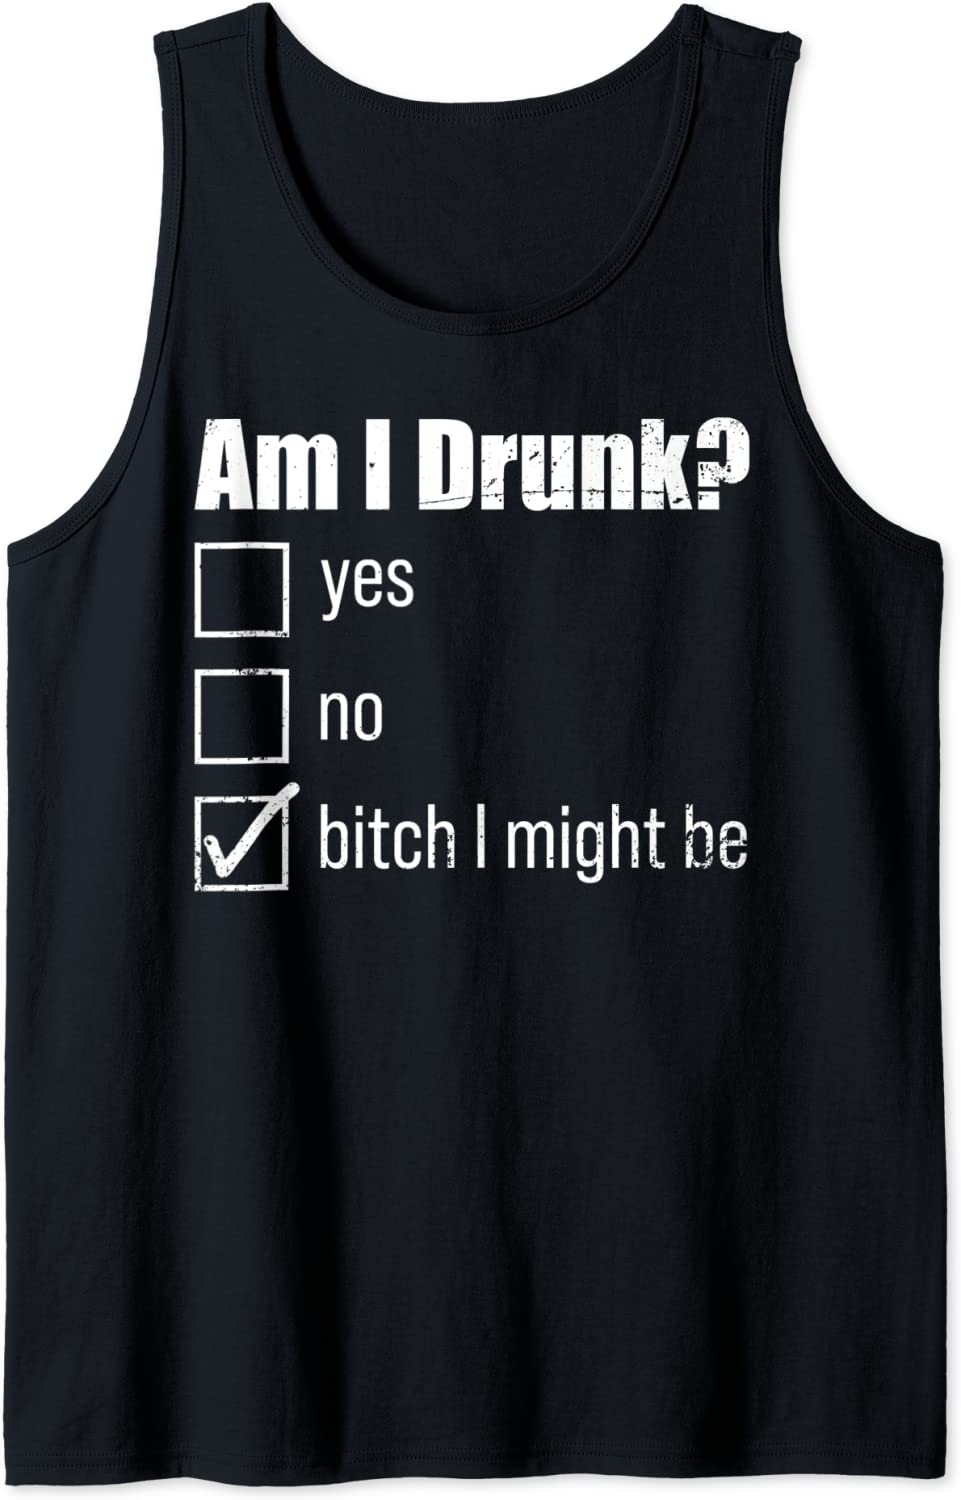 Many Outlet ☆ Free Shipping popular brands Drinking Drunk Shirt Bachelorette Tank Beer Top Am I